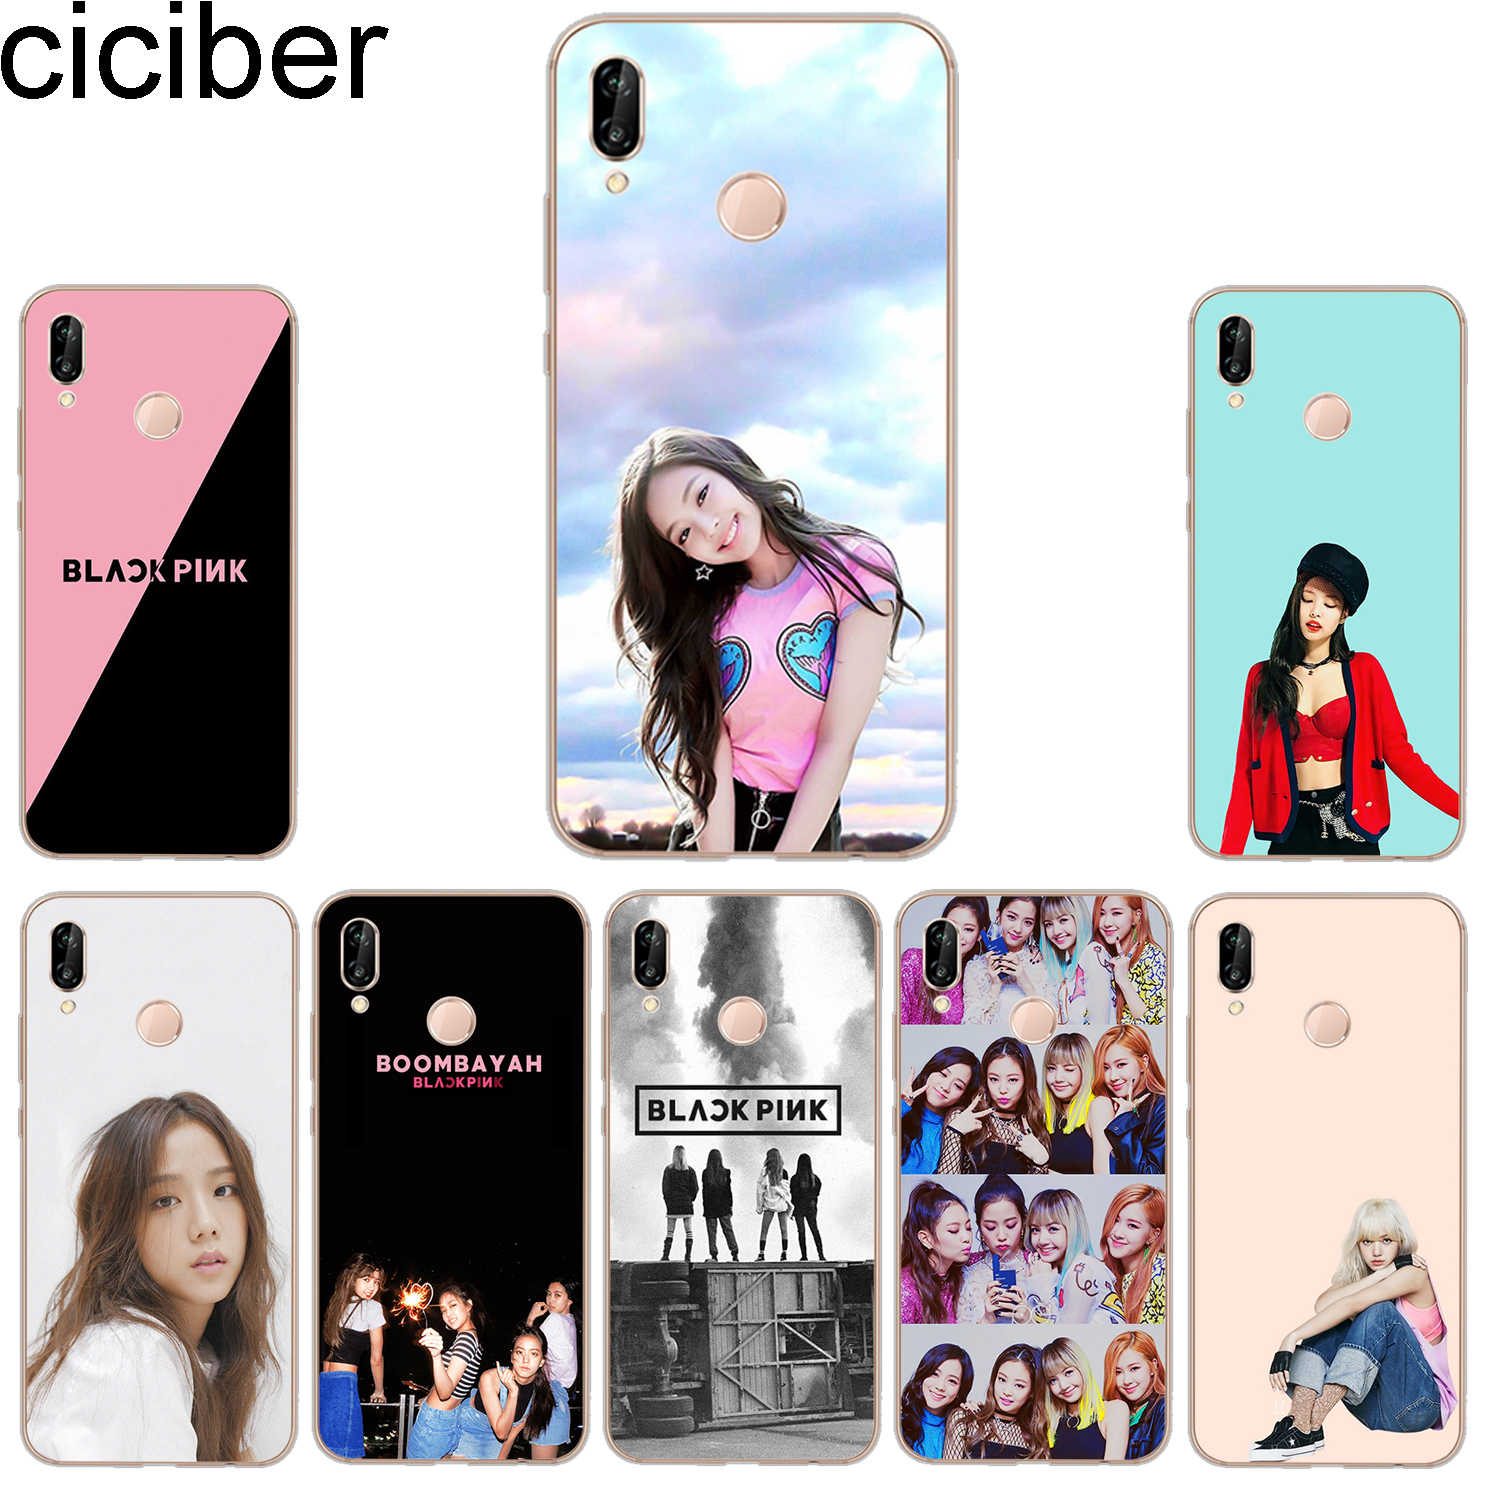 ciciber Phone Cases for Huawei P20 P8 P9 P10 Mate 20 10 9 Lite 2017 X Pro Soft TPU Back Cover for Huawei P Smart 2019 Blackpink